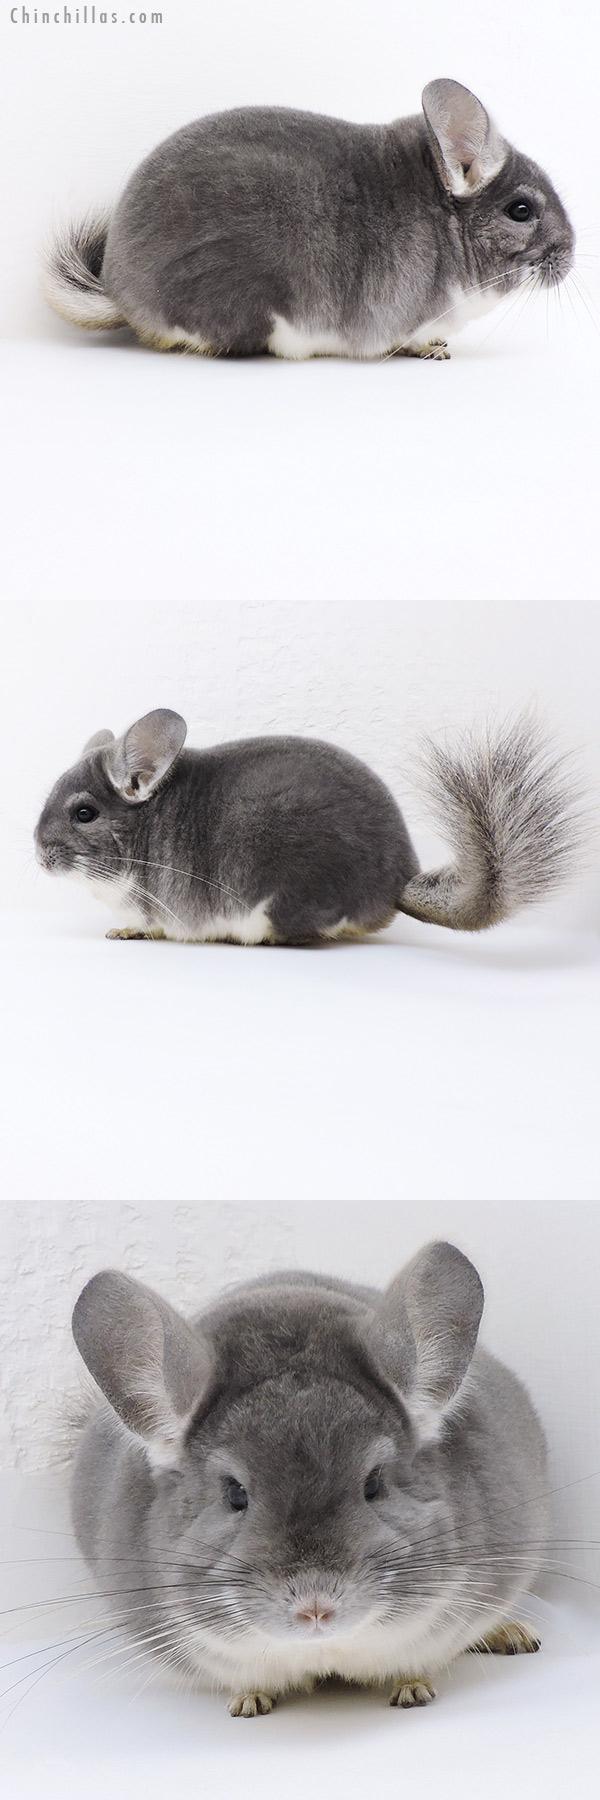 19144 Extra Large Herd Improvement Quality Violet Male Chinchilla